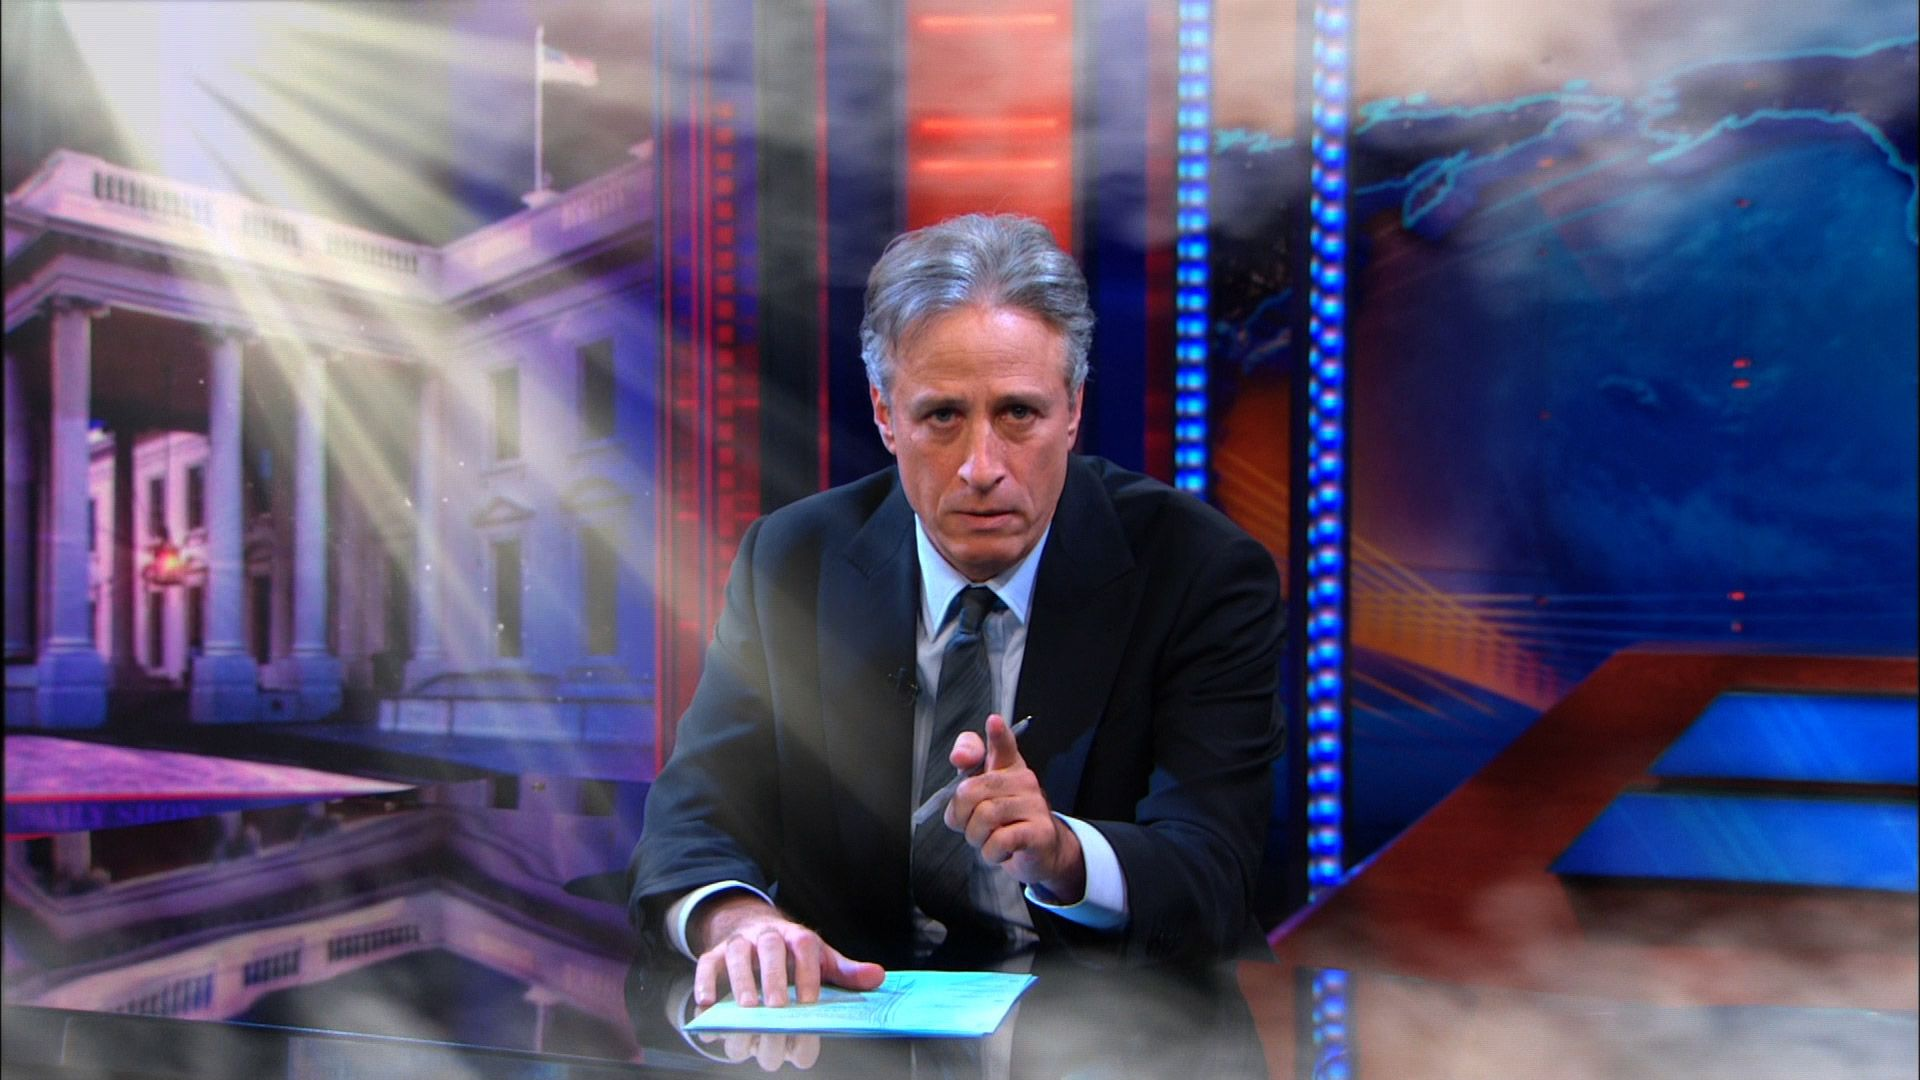 Exclusive - Meet Jon Stewart at Camera Three - The Daily Show with Jon Stewart | Comedy Central